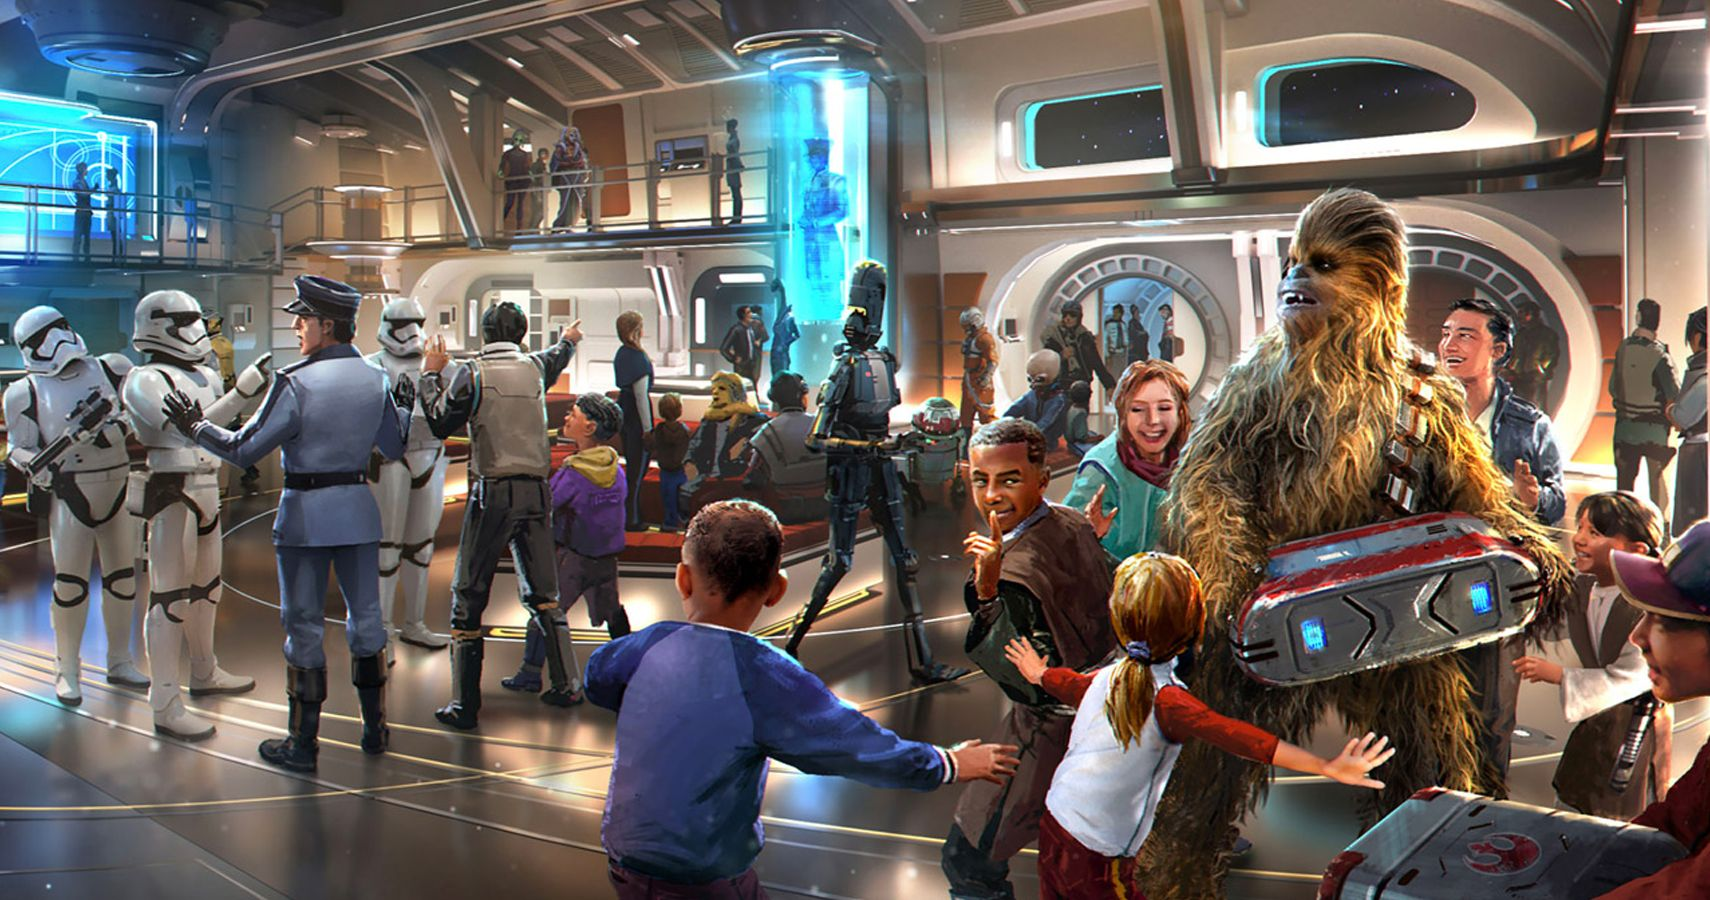 An Interactive 'Star Wars' Hotel Is Coming To Disney World Next Year